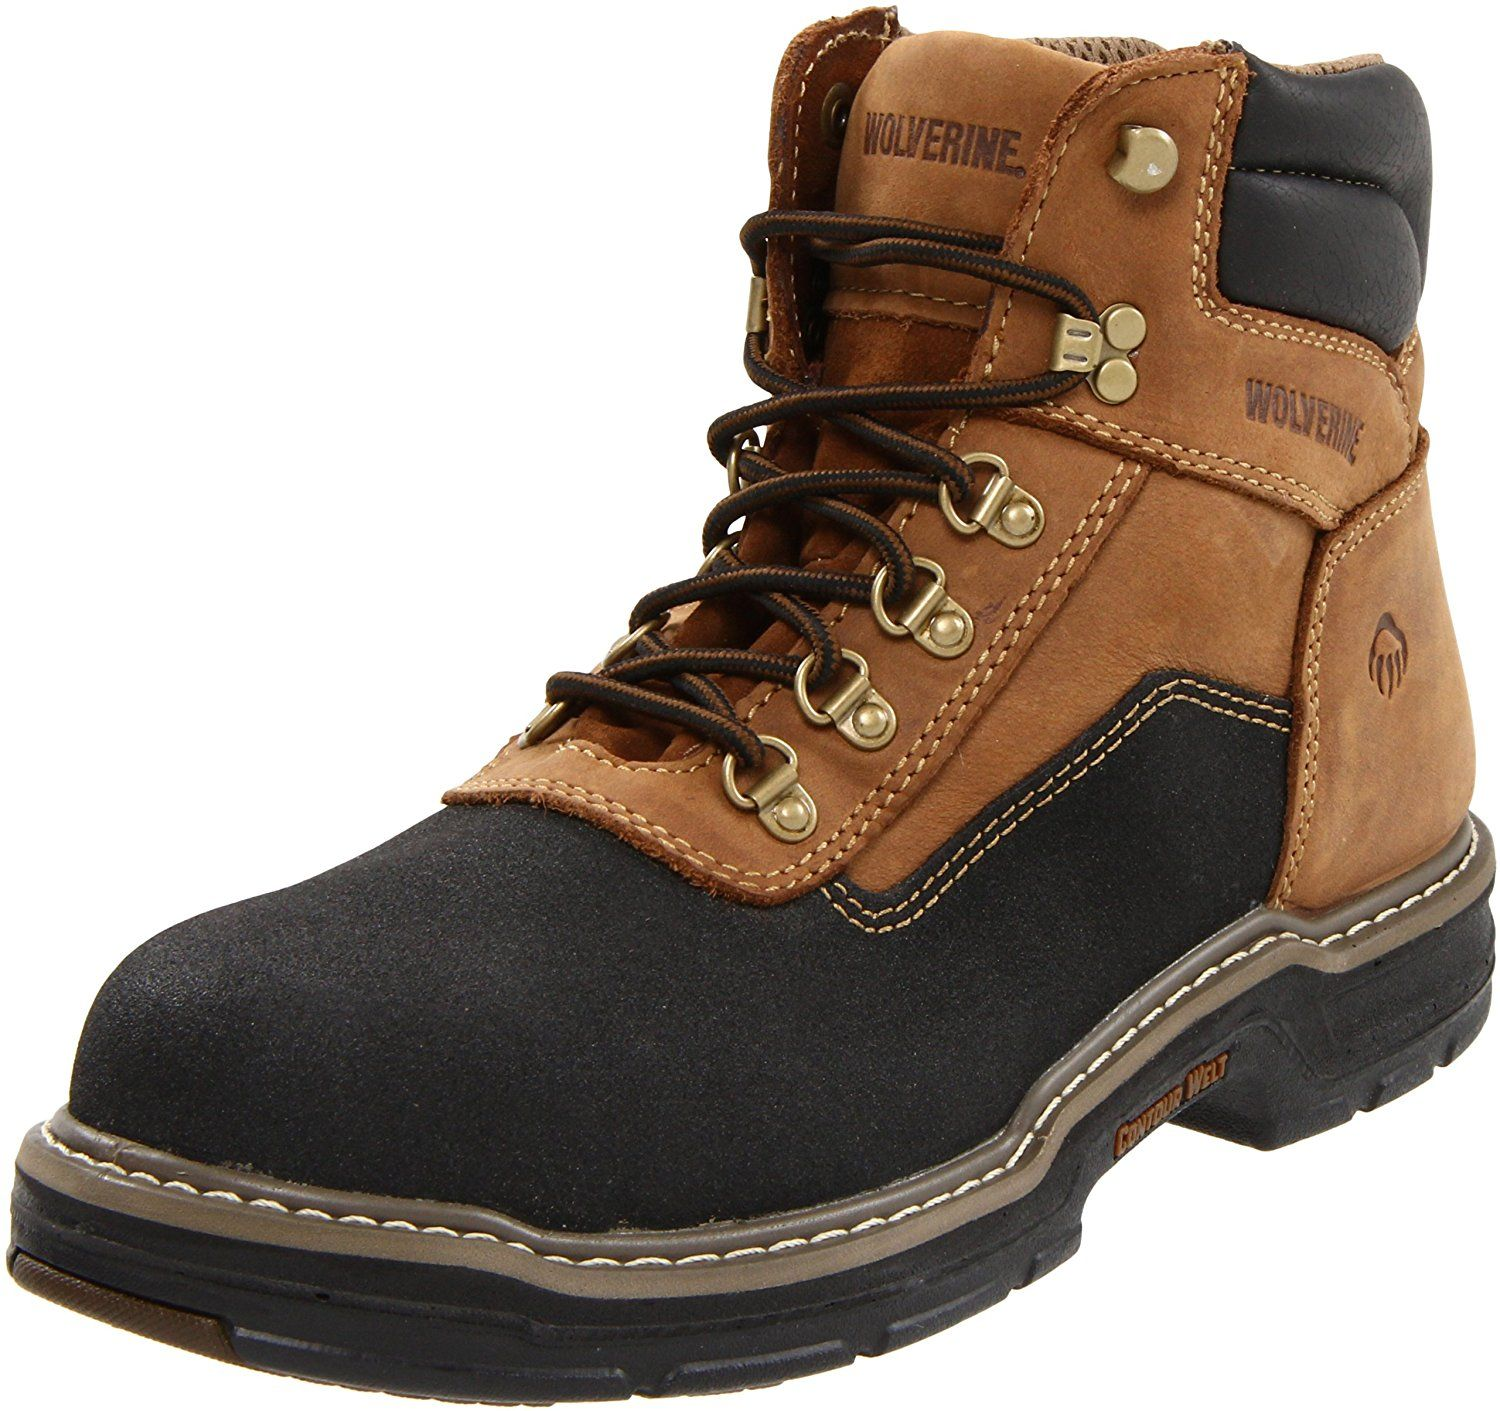 Wolverine Men S Corsair 6 Ct Work Boot Awesome Boots Click The Image Men S Boots Boots Work Boots Work Boots Men